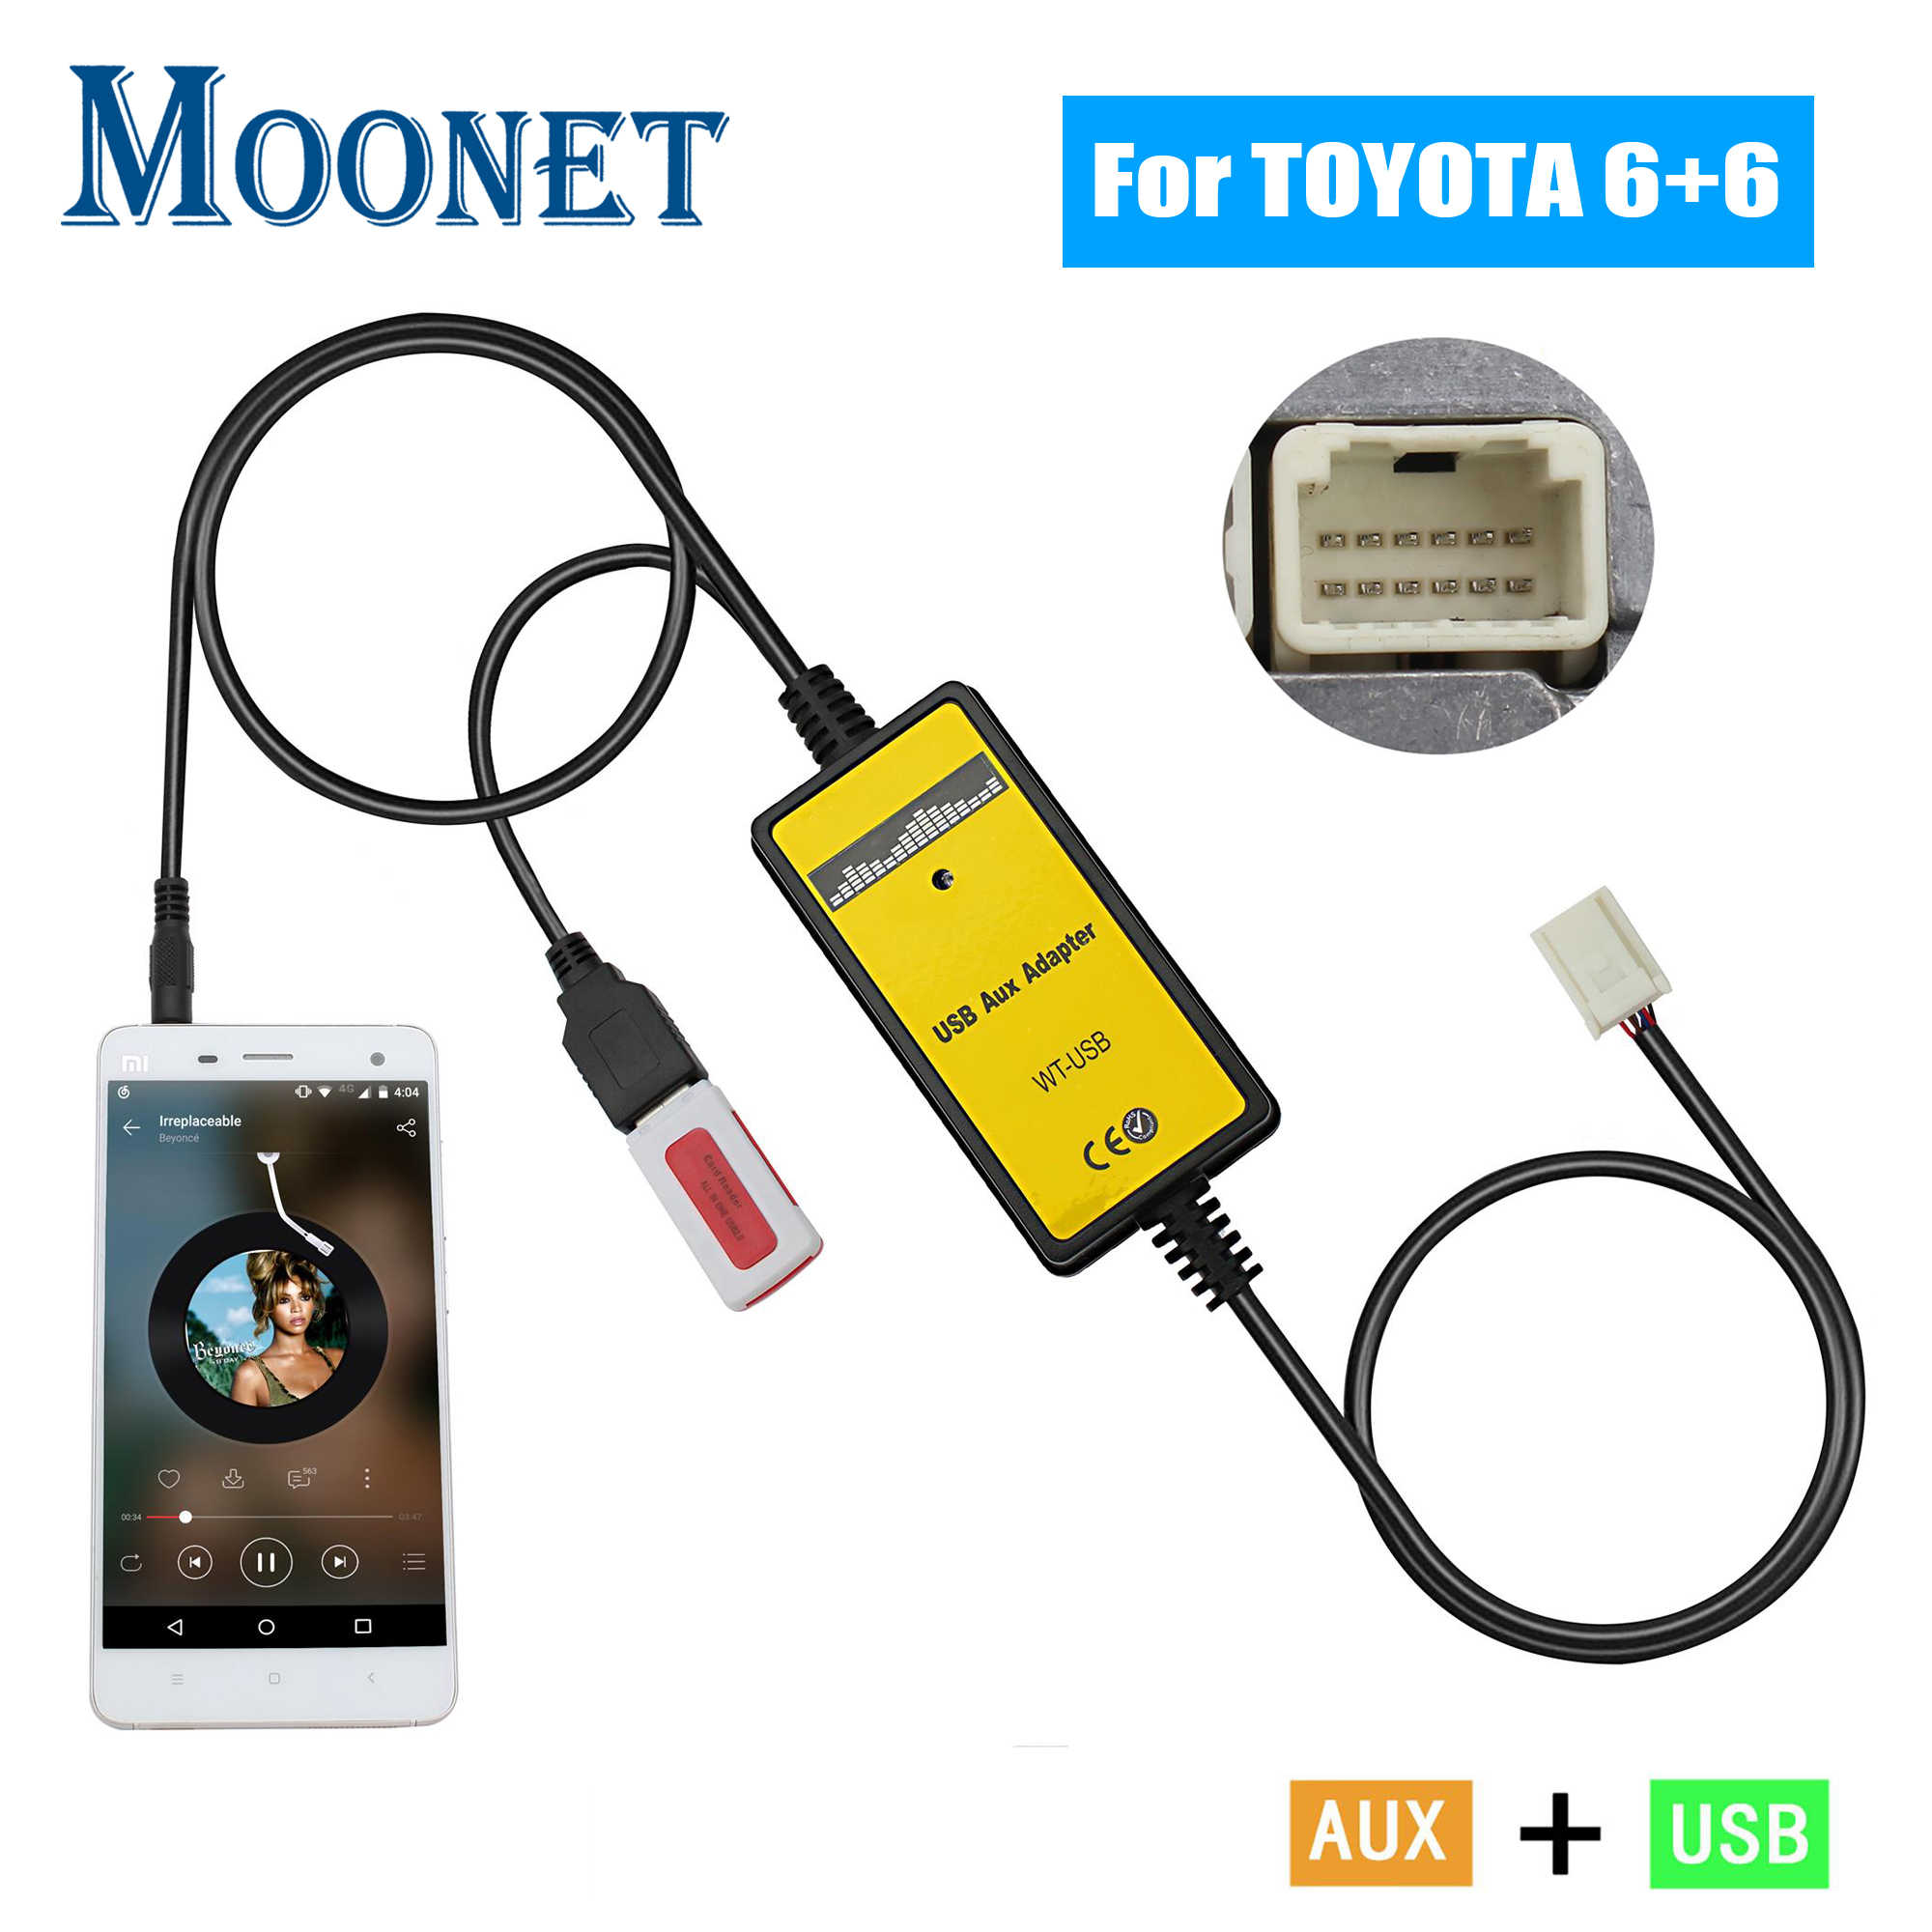 Moonet Auto MP3 USB AUX Adapter 3.5mm AUX Interface Cd-wisselaar voor Toyota (6 + 6pin) avensis RAV4 Auris Corolla Yaris QX005